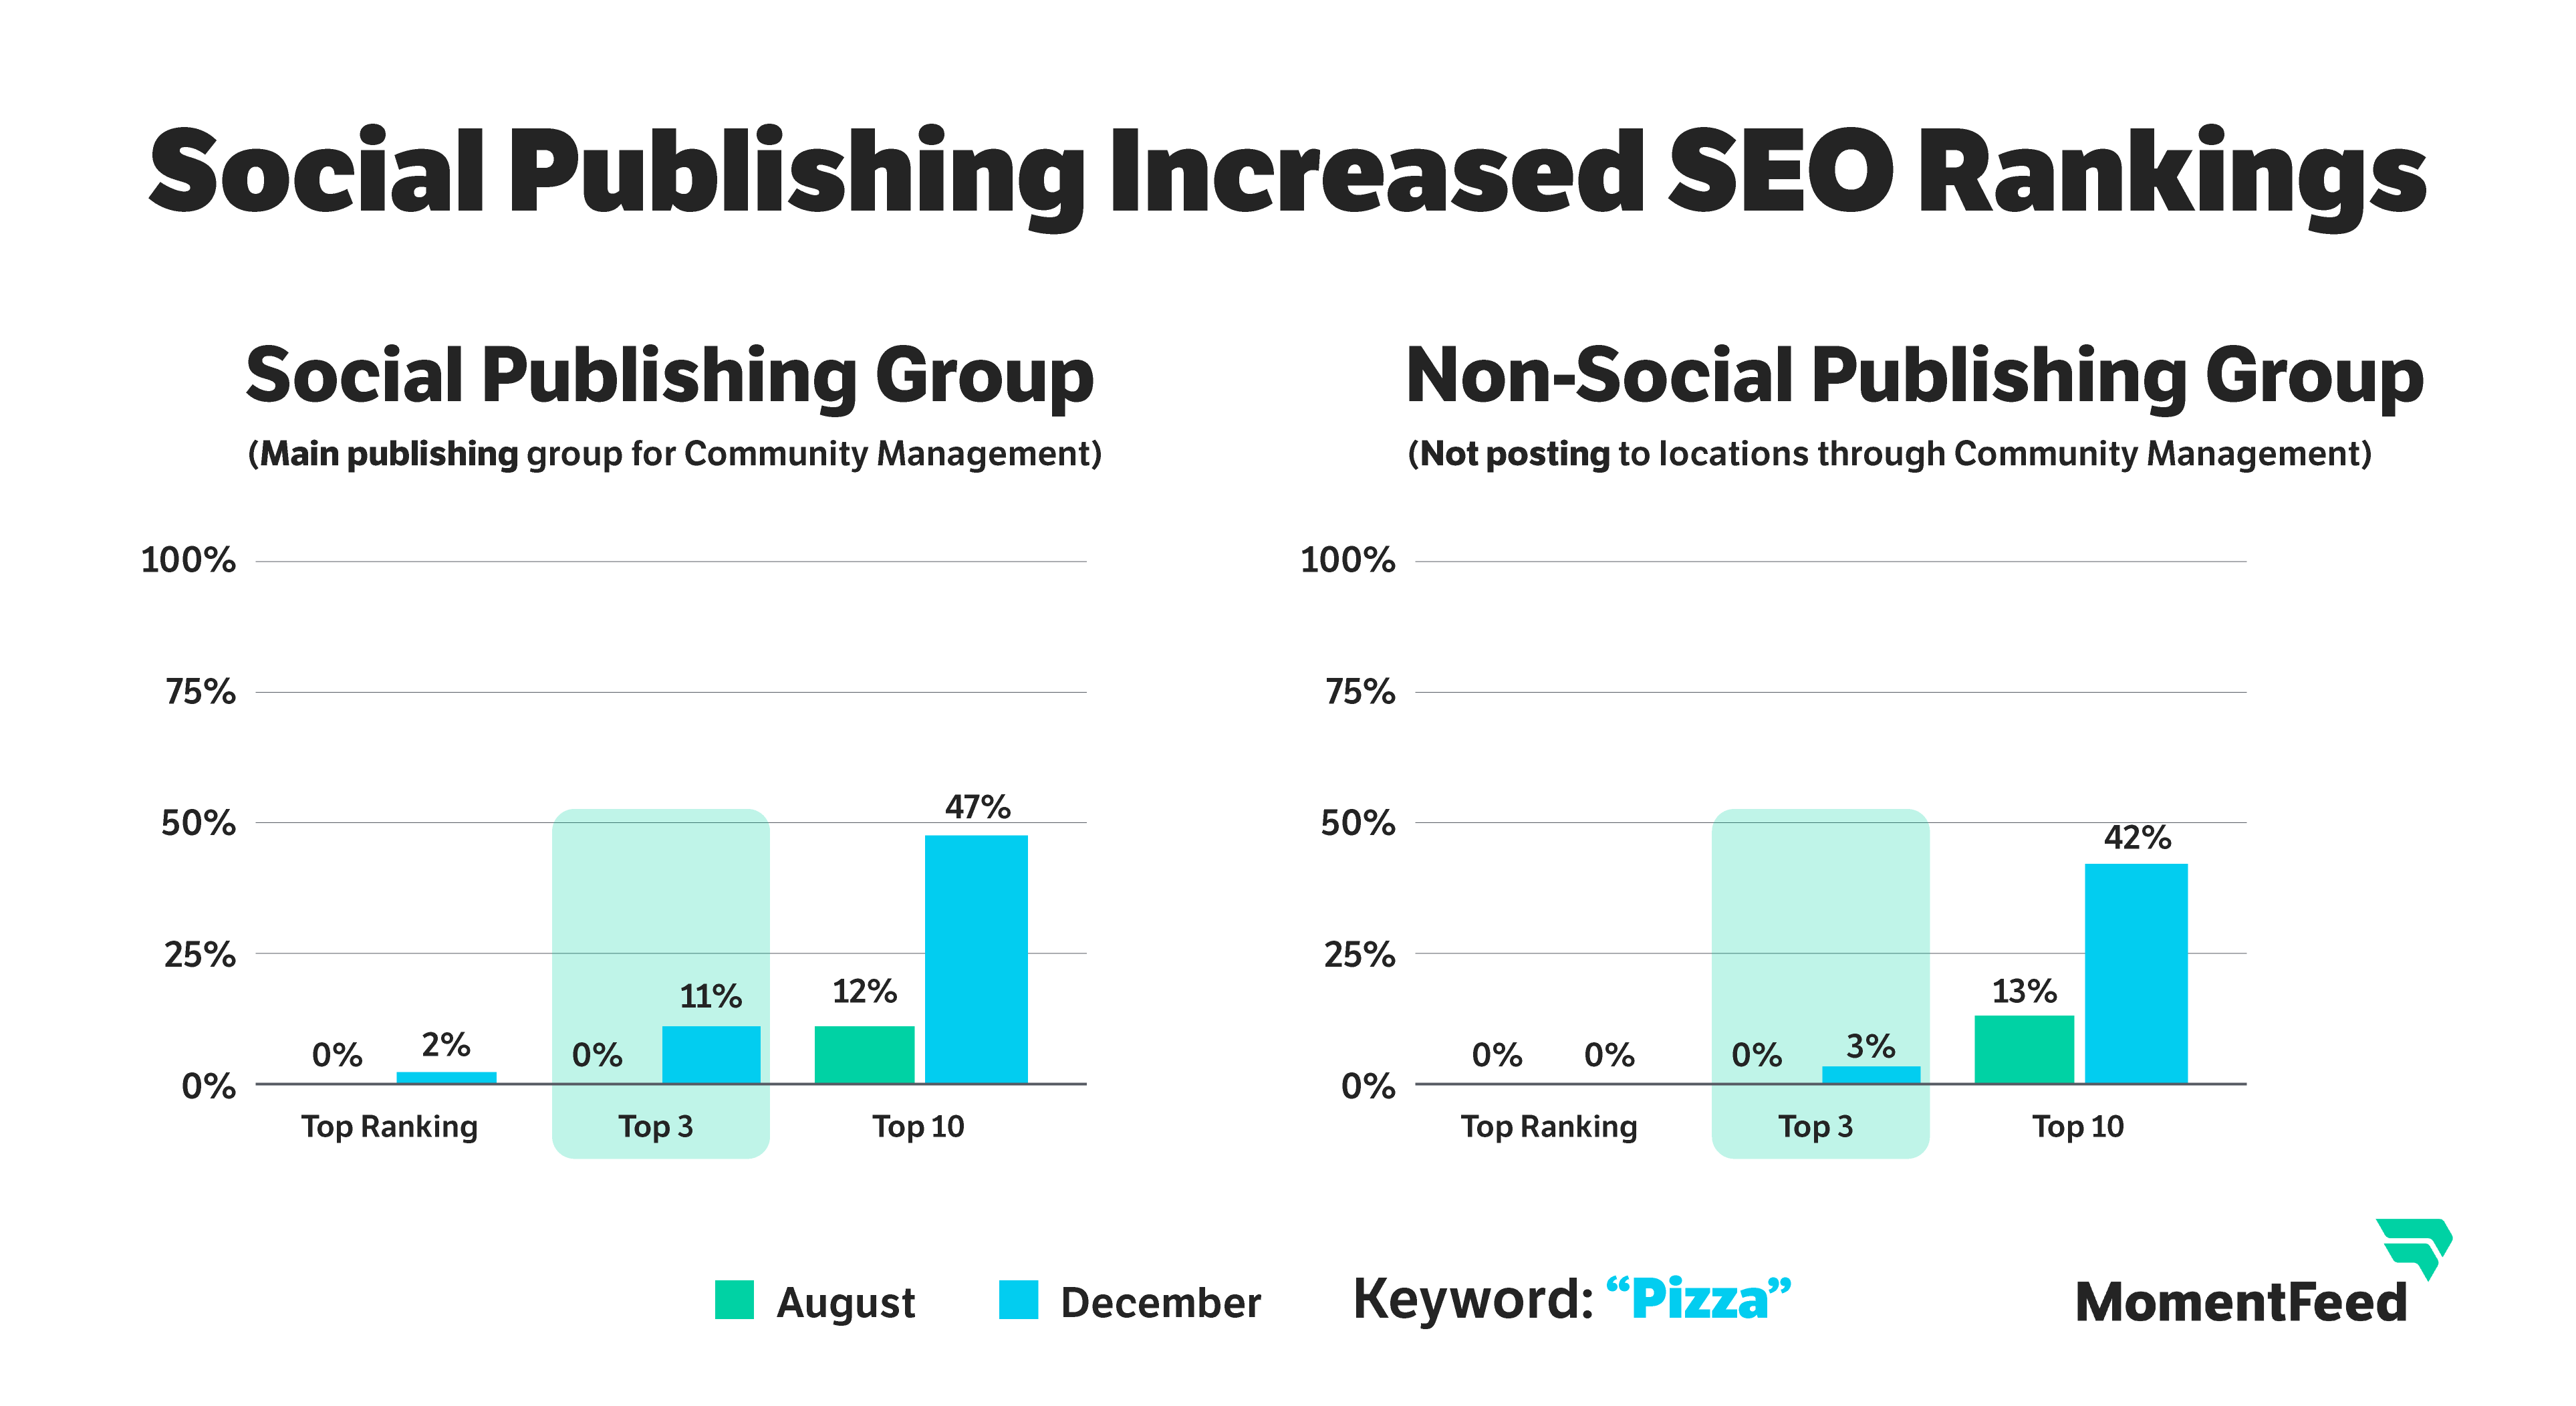 Social Publishing Increased SEO Rankings - side by side comparison